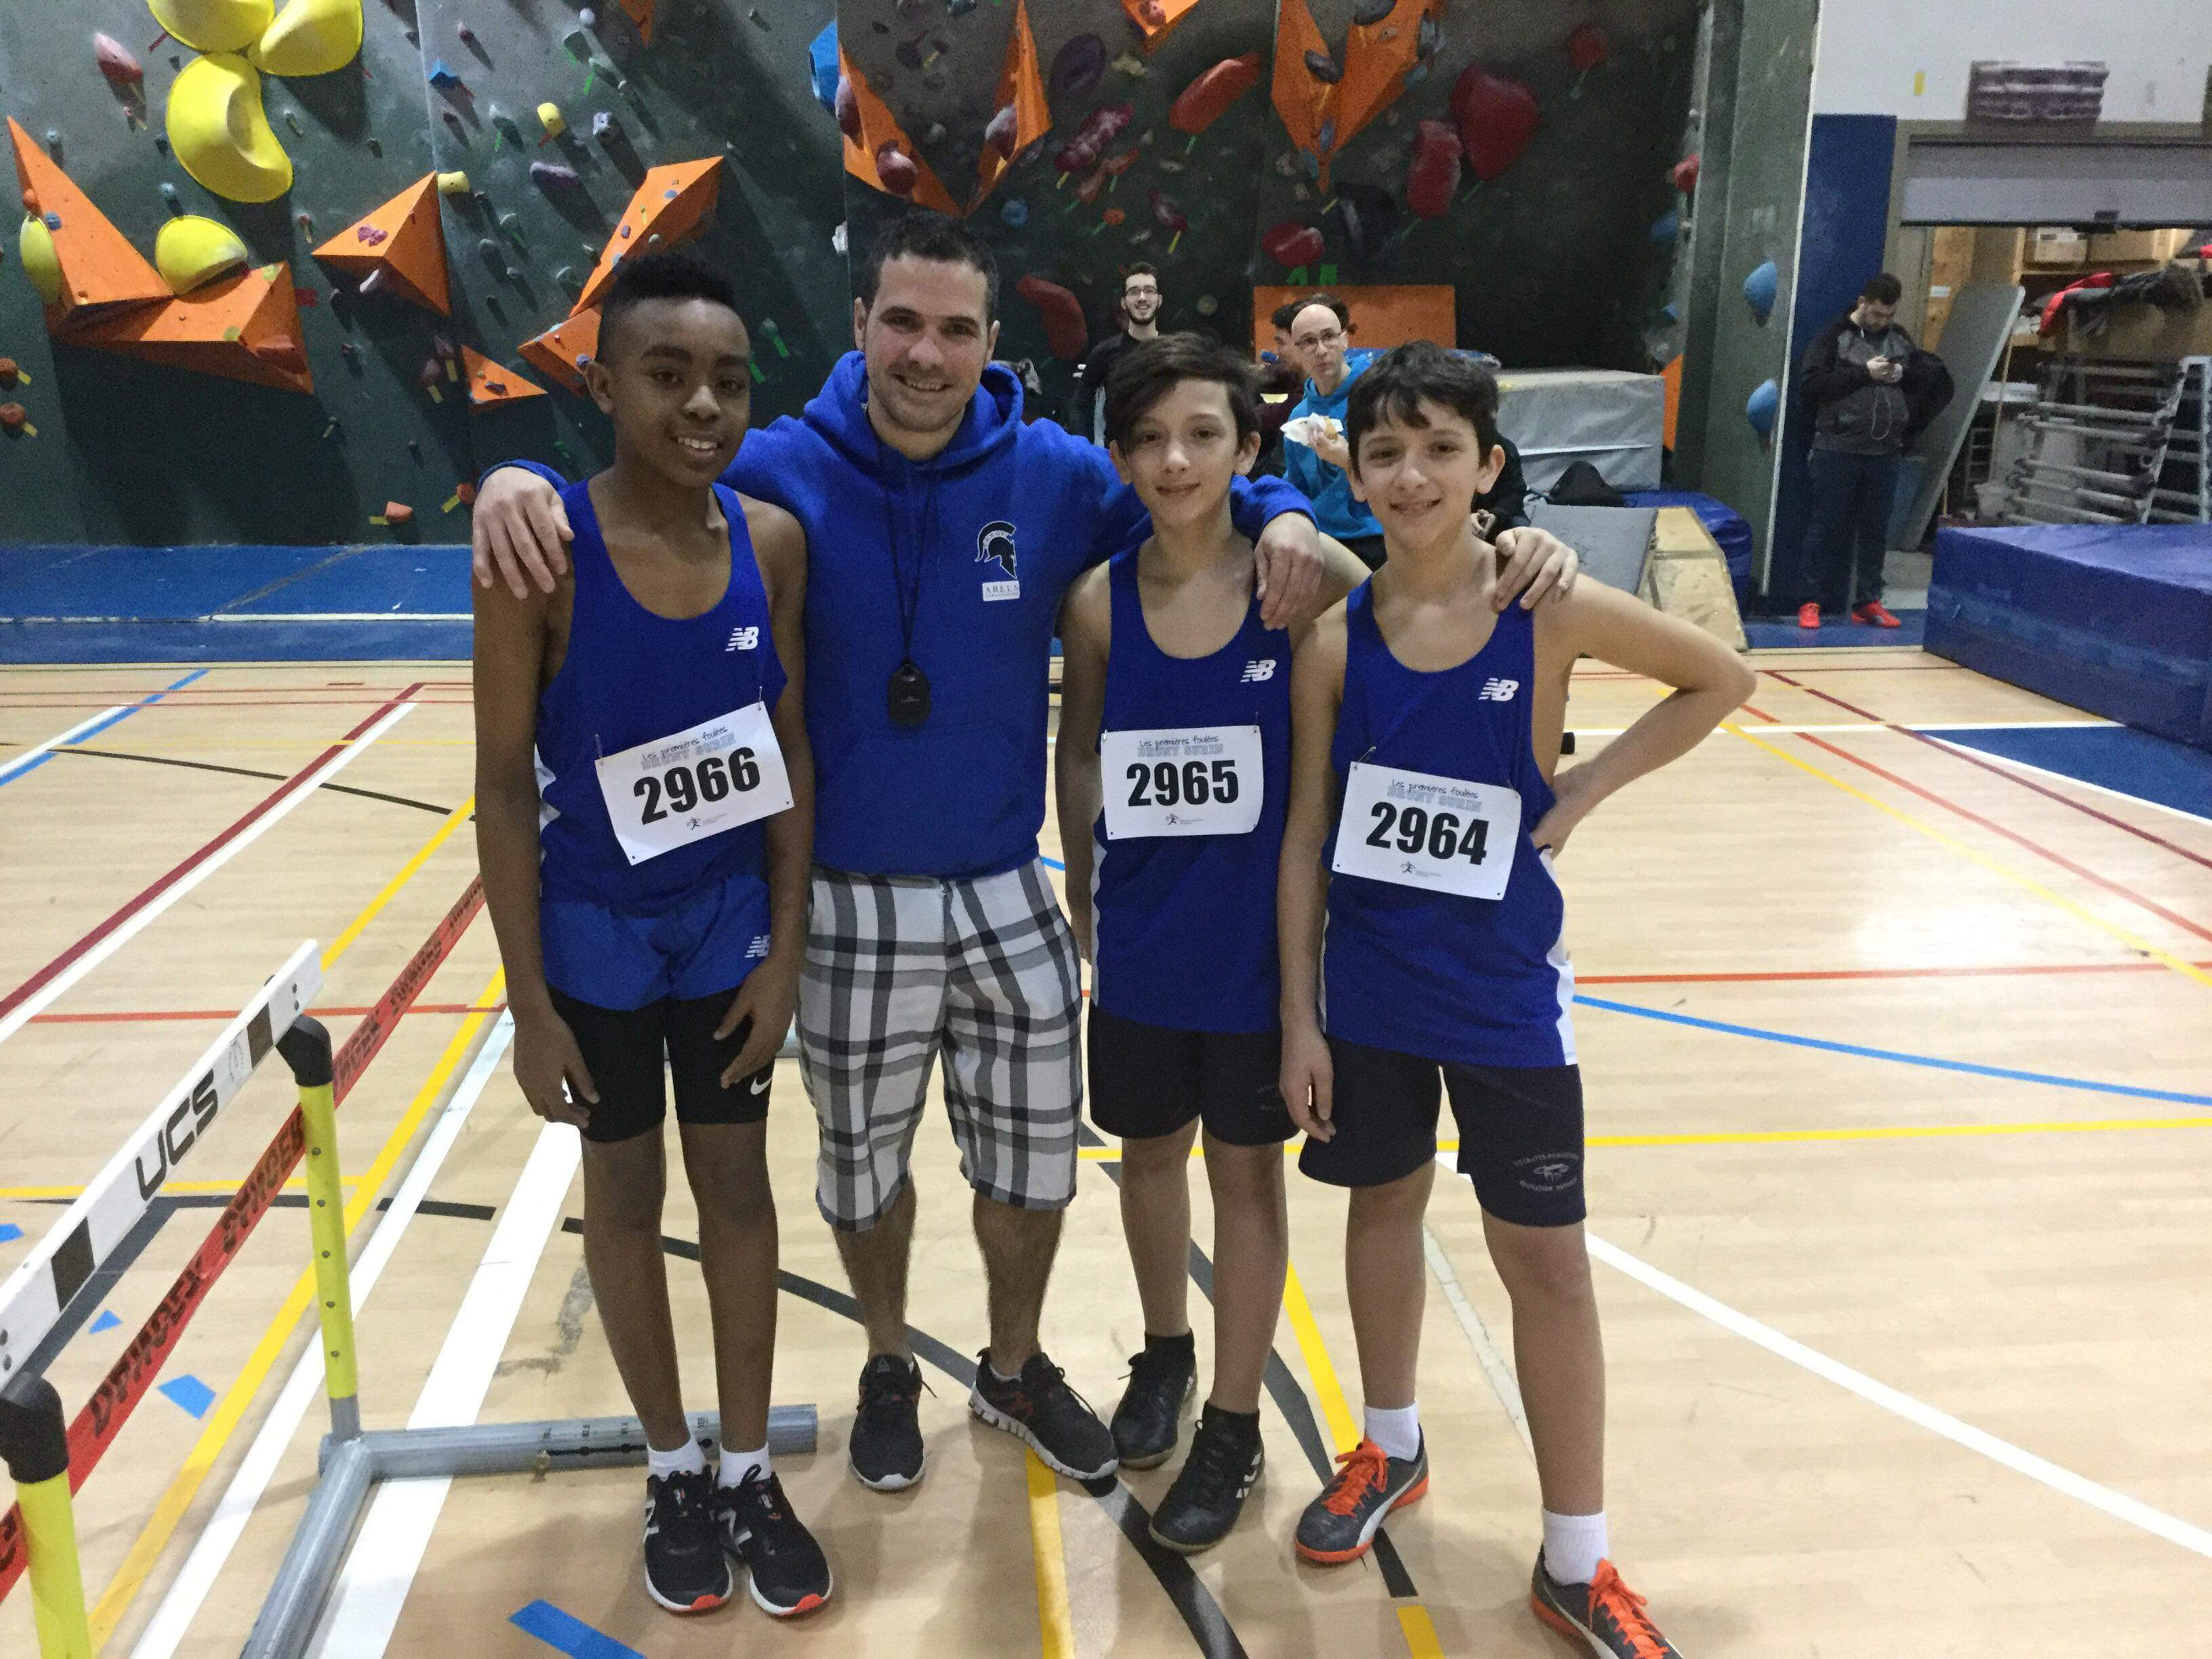 Athletics: The Club Areus of the Socrates-Démosthène School wins 5 podiums in a historic departure!